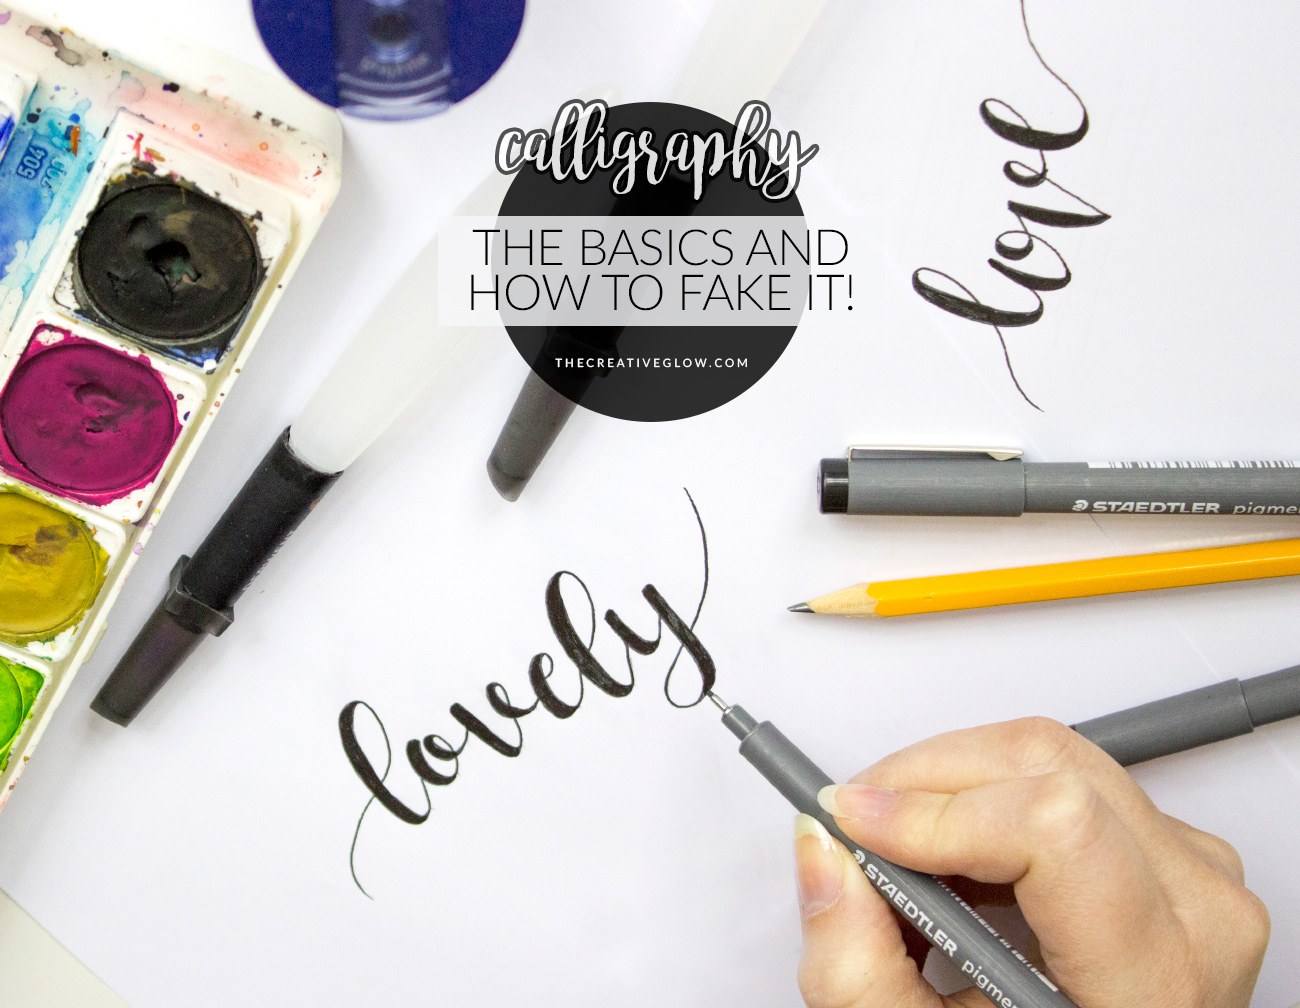 Diy calligraphy basics the 1 rule faux calligraphy Calligraphy basics